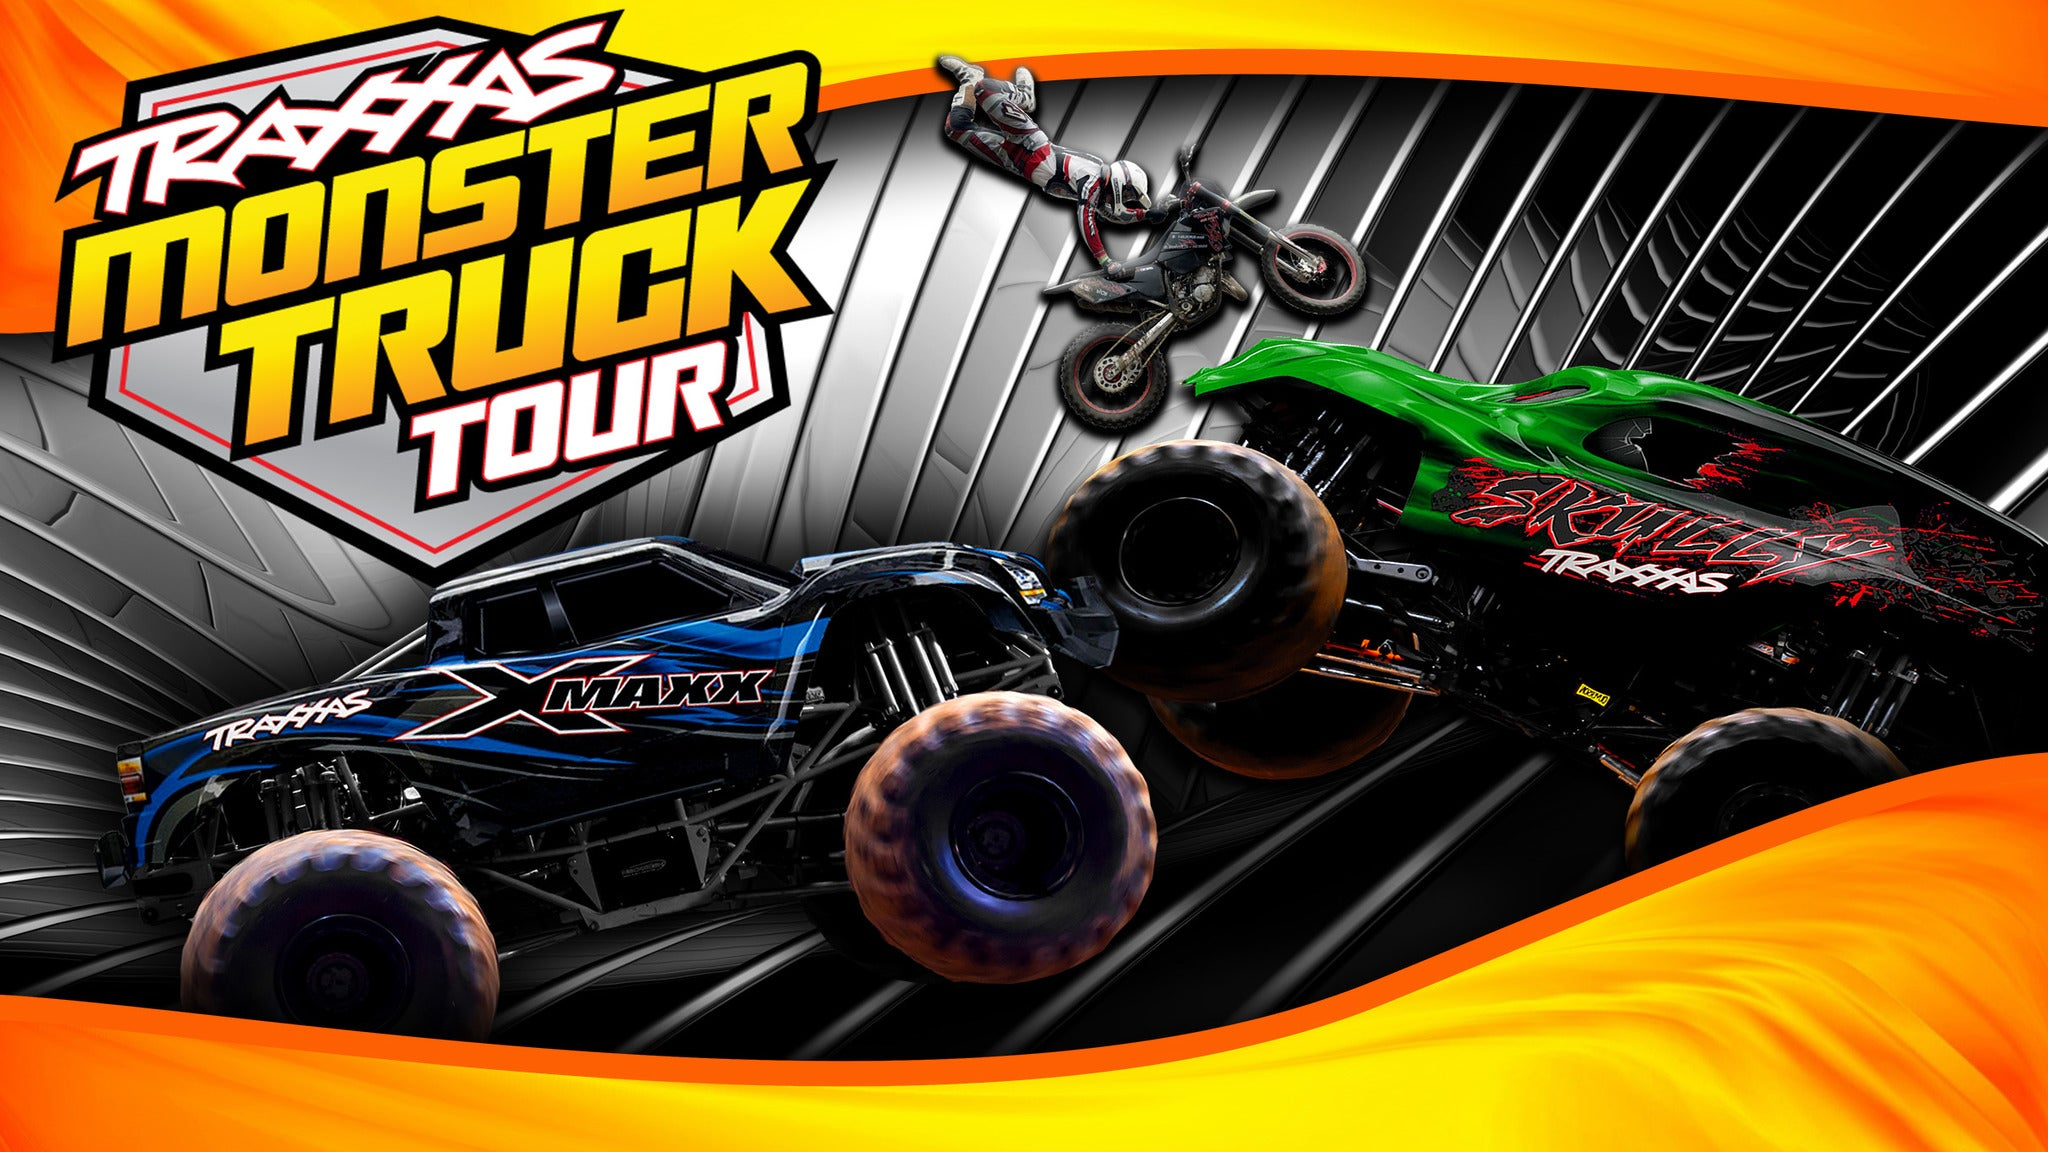 Traxxas Monster Truck Tour at Columbus Civic Center